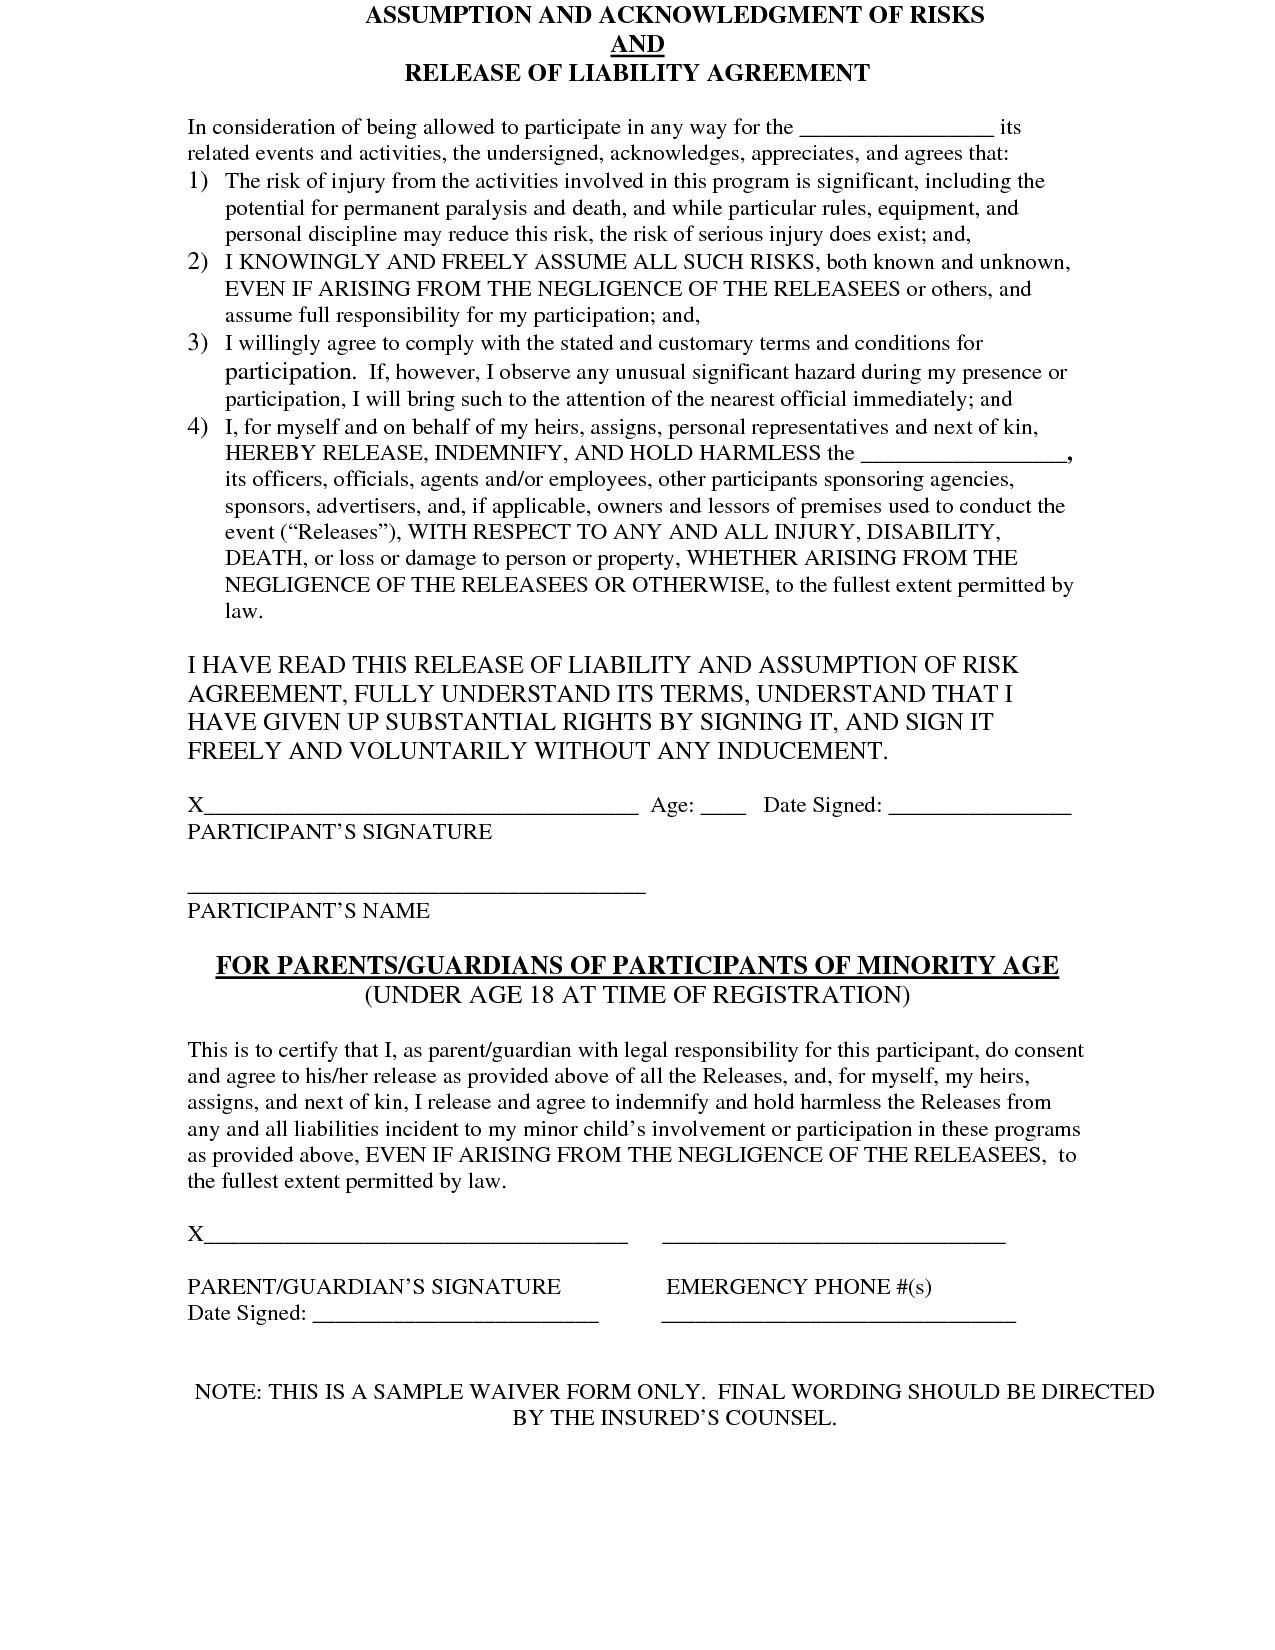 Event Liability Form By Imb12814 | Tomsplans - liability release ...